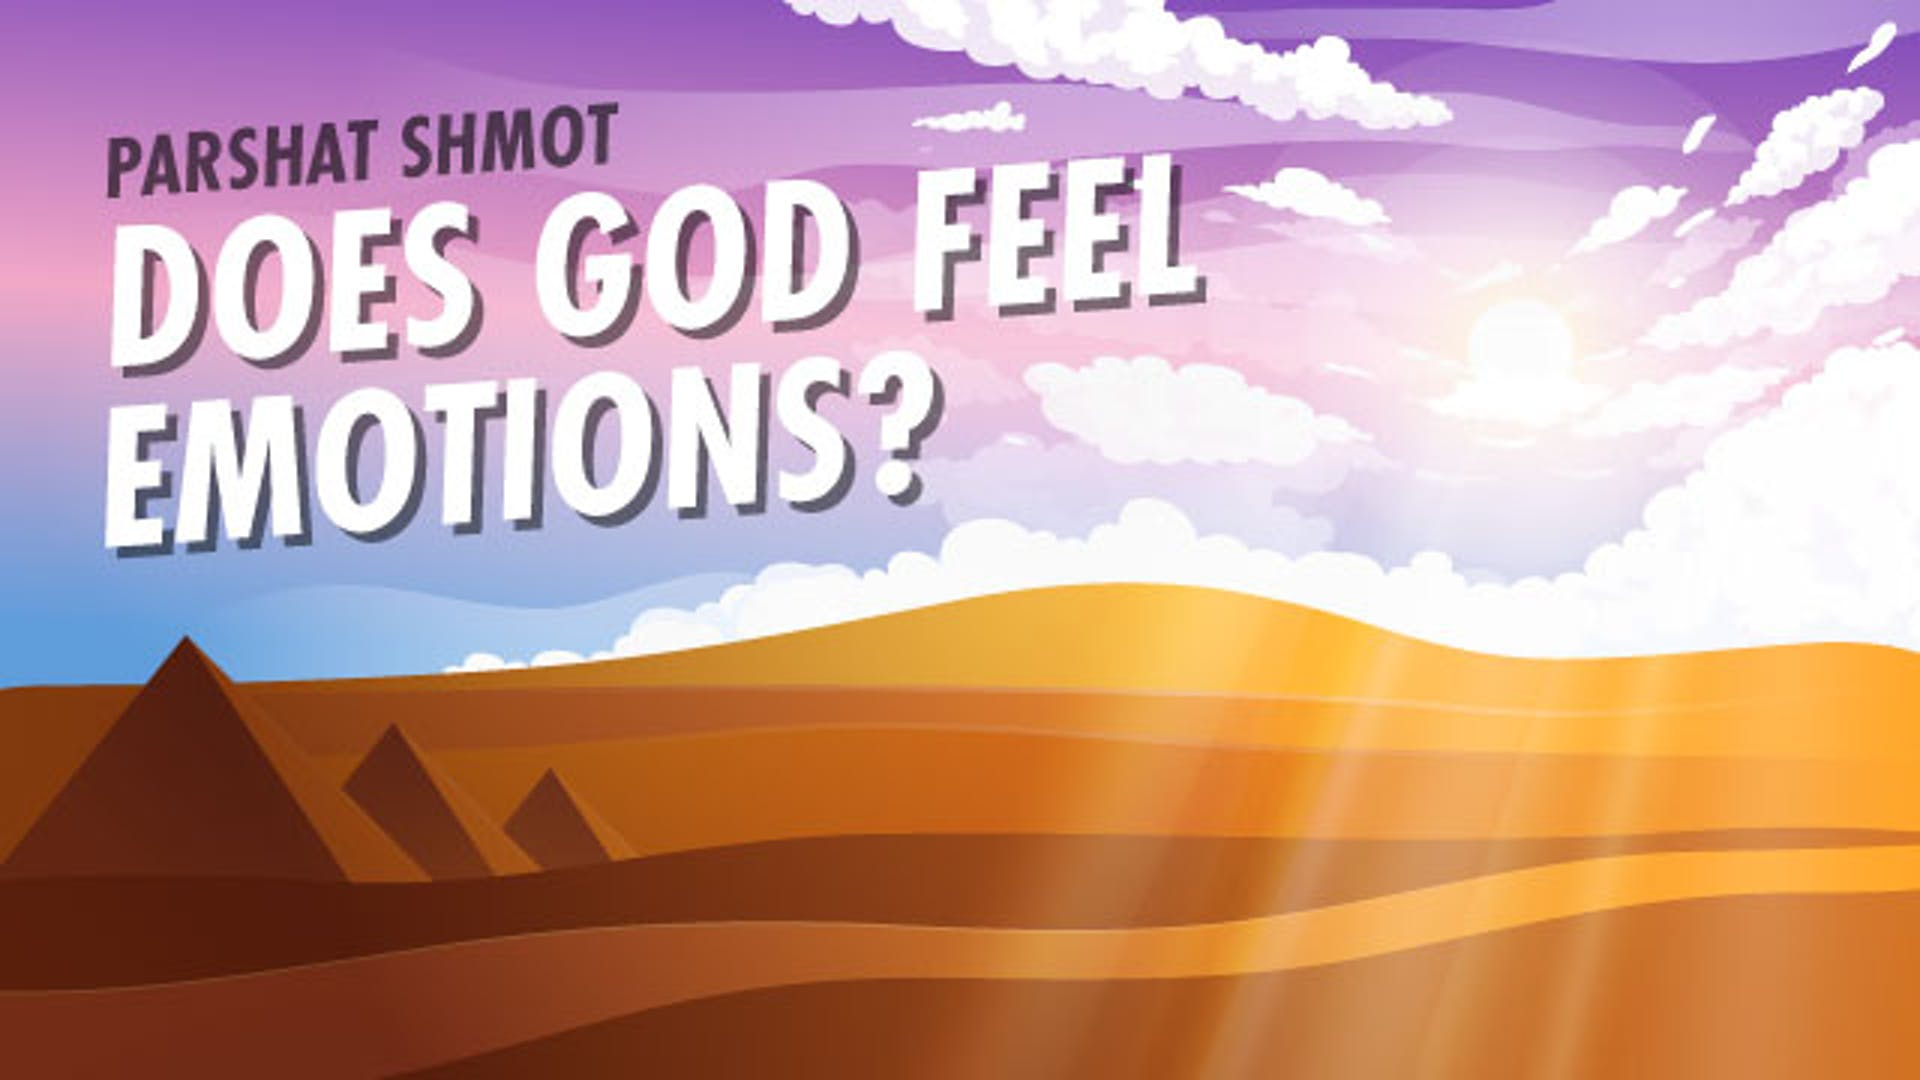 Does God have emotions like Love for us